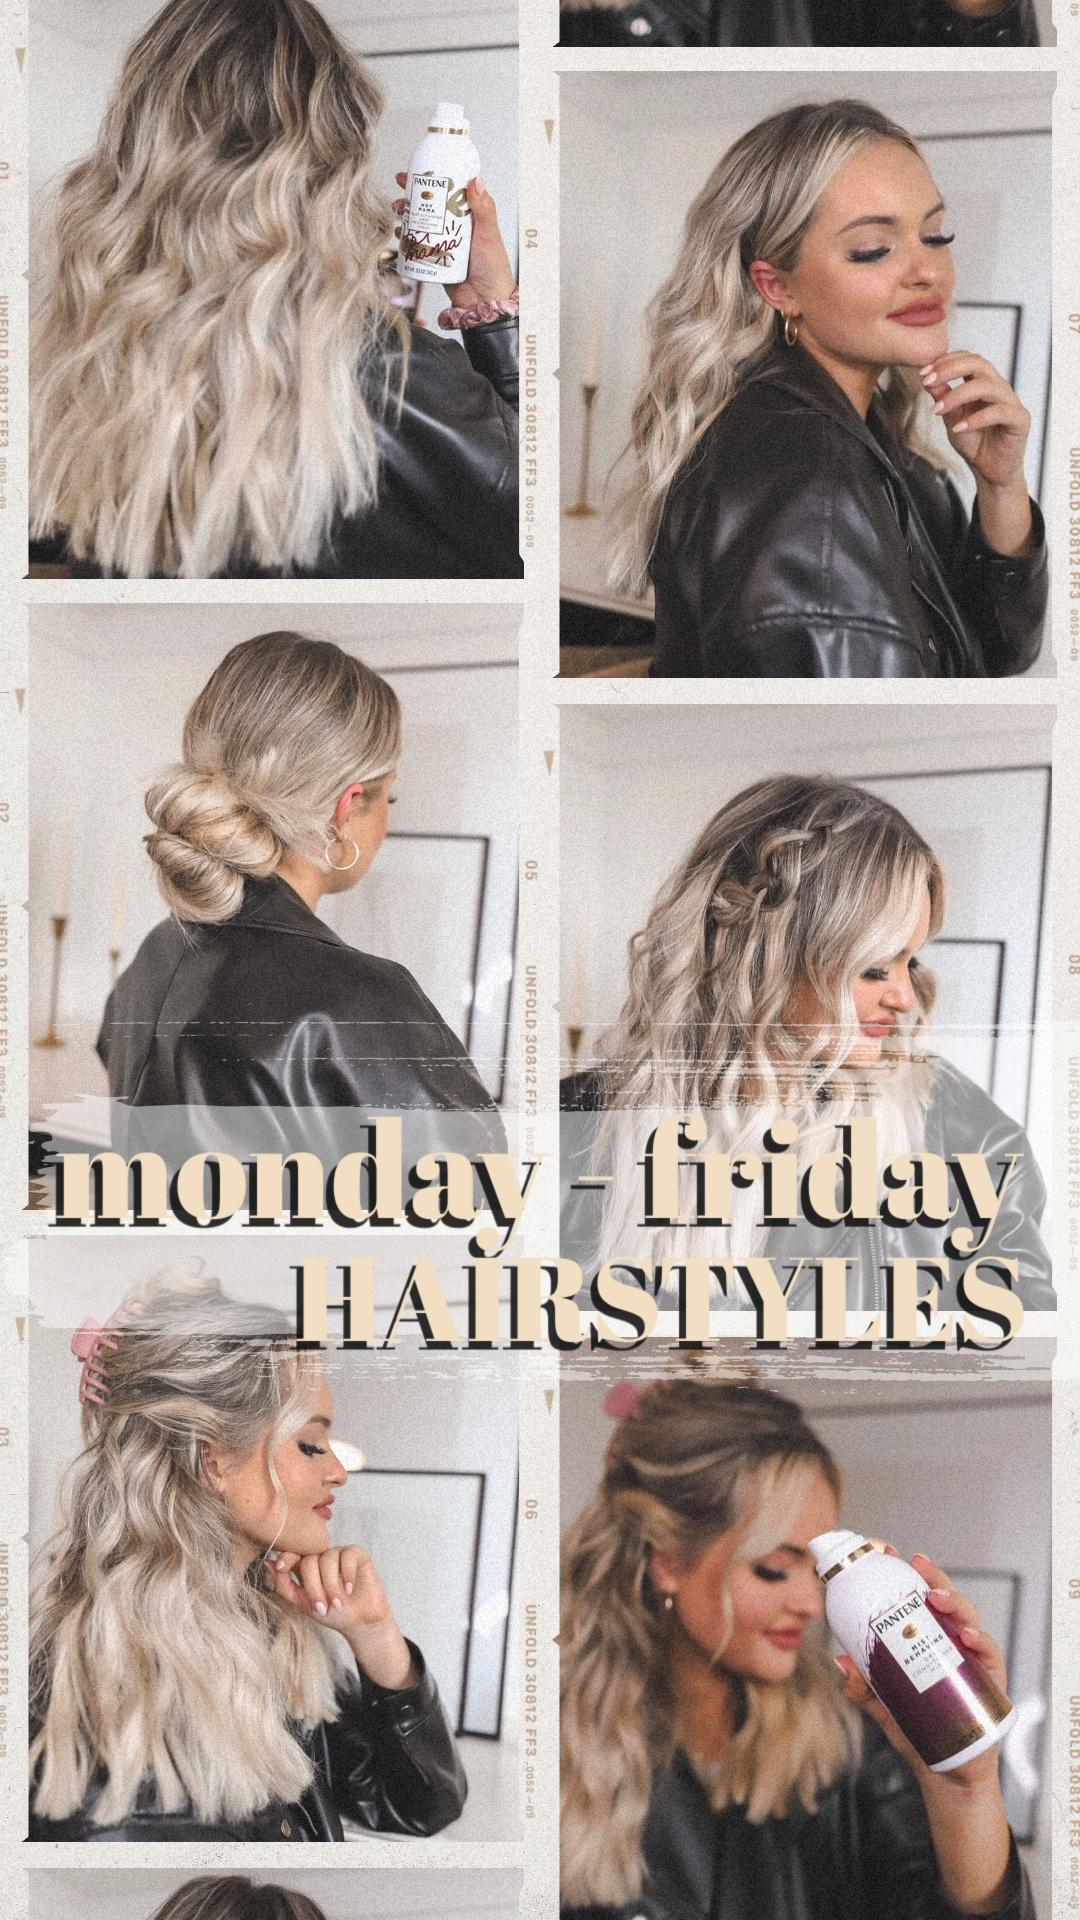 monday – friday hairstyles